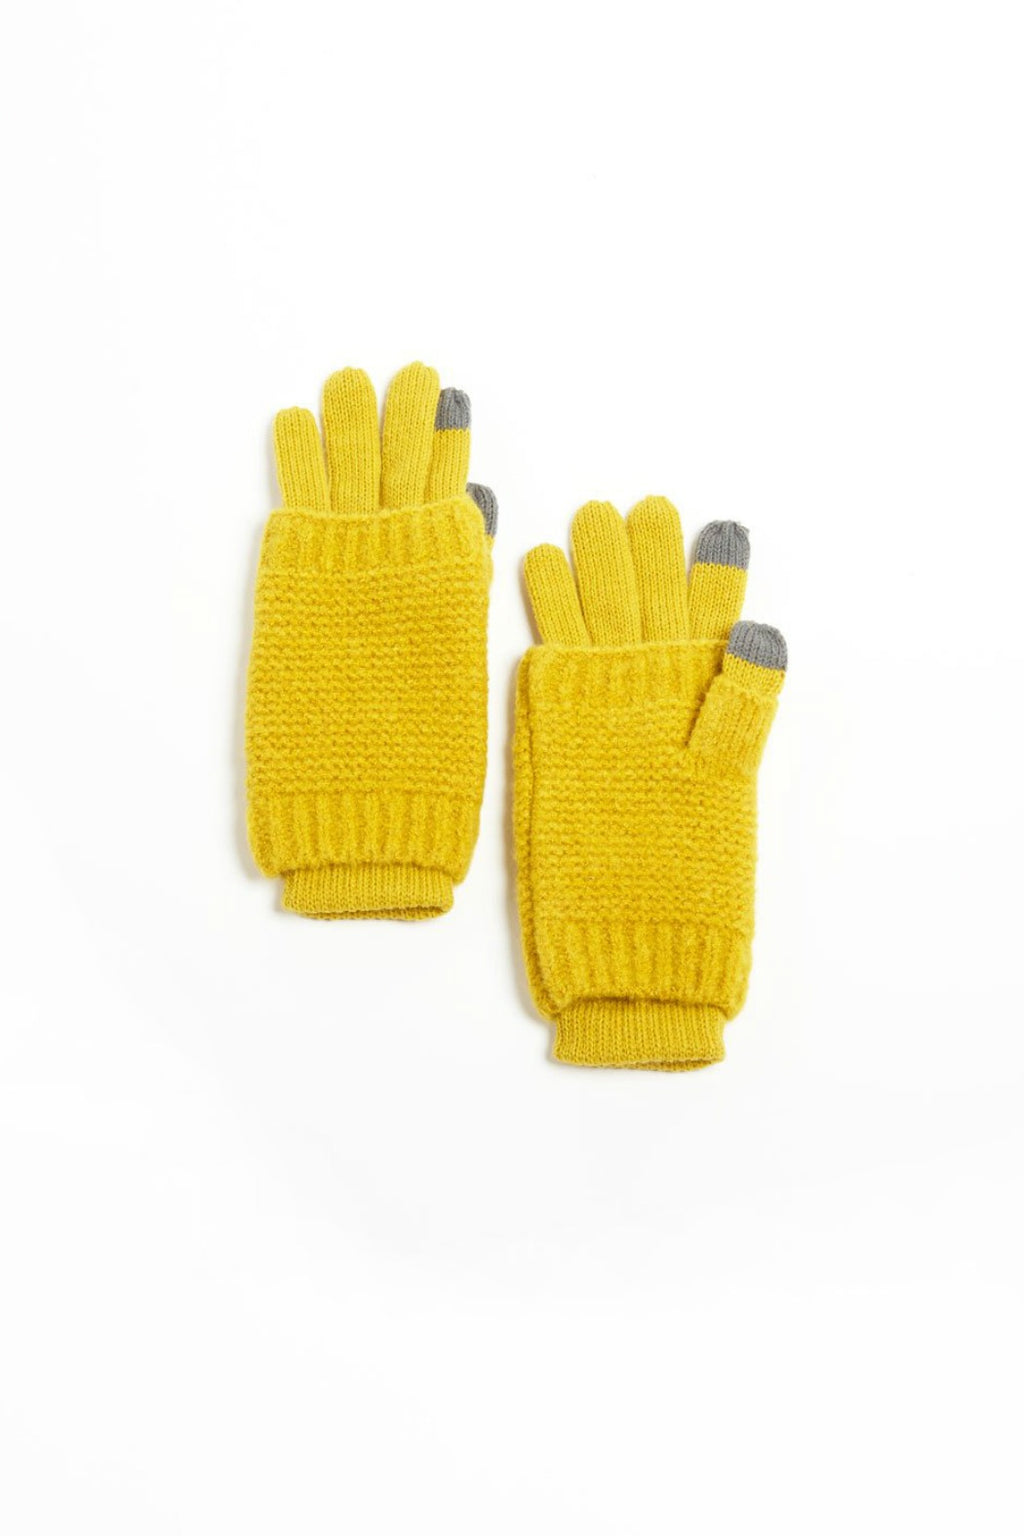 Look Striped Knit Fingerless Gloves in Yellow